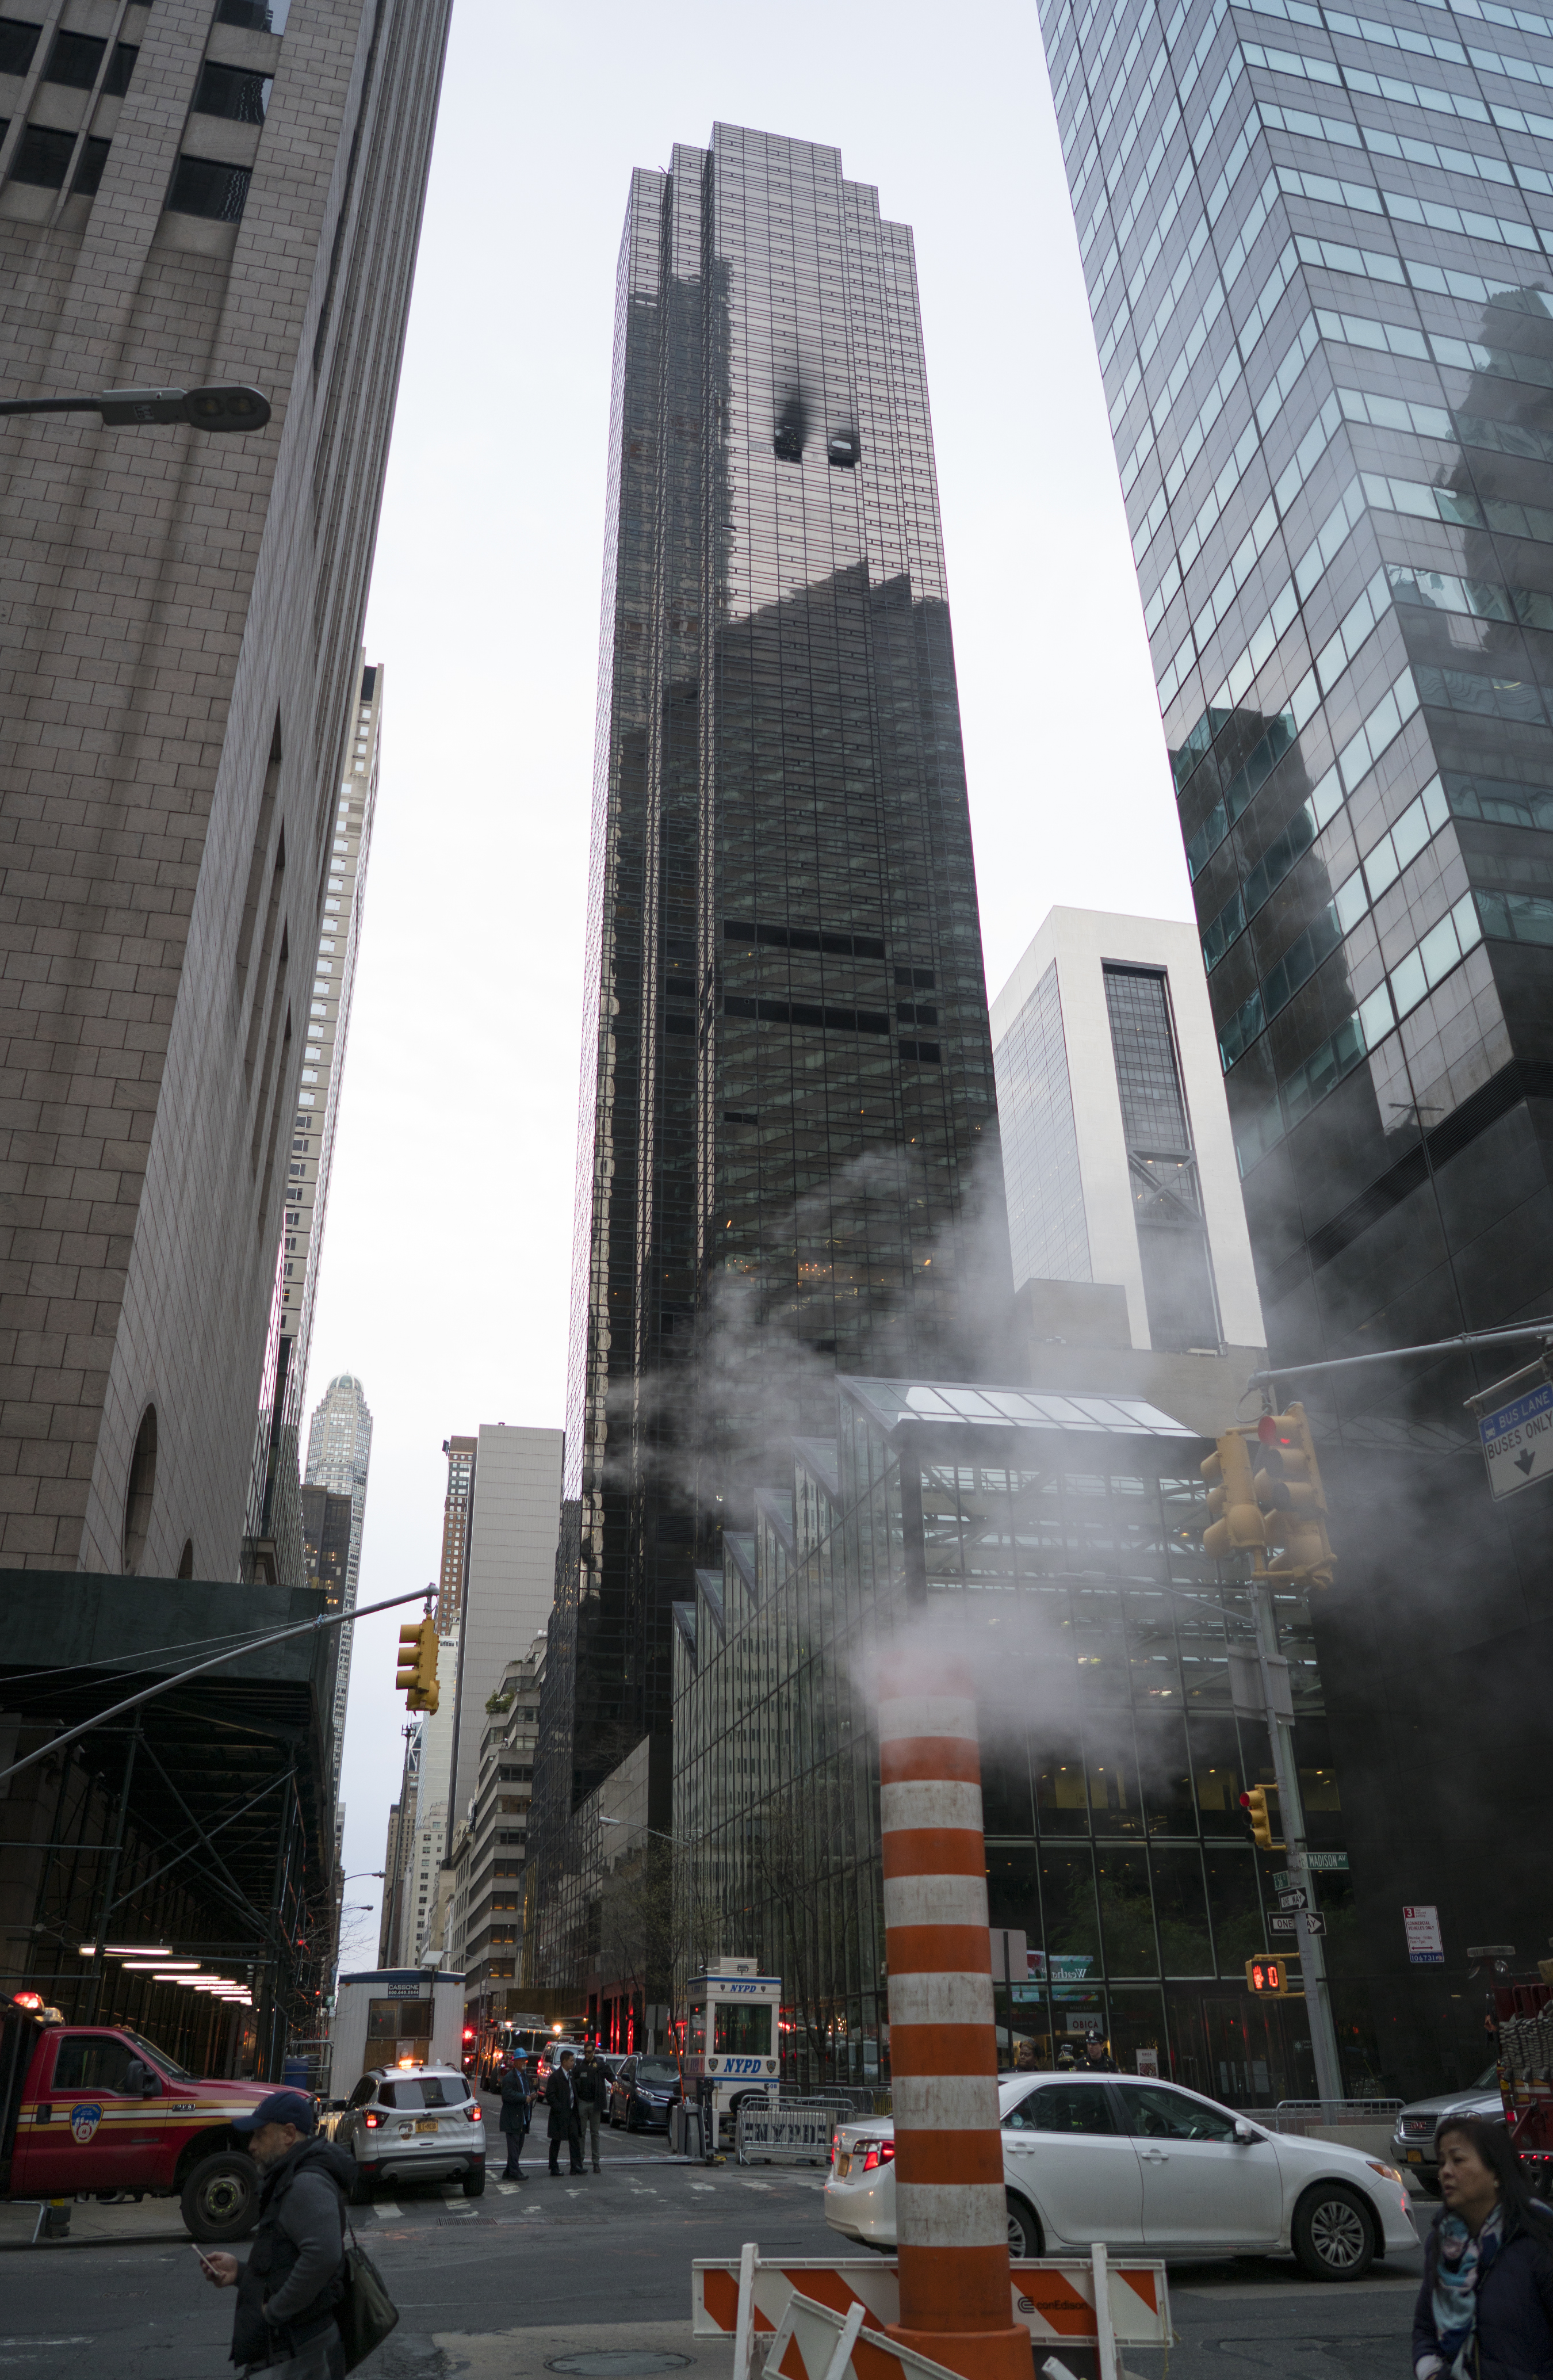 Man Killed In Fire At Trump Tower In New York The Blade